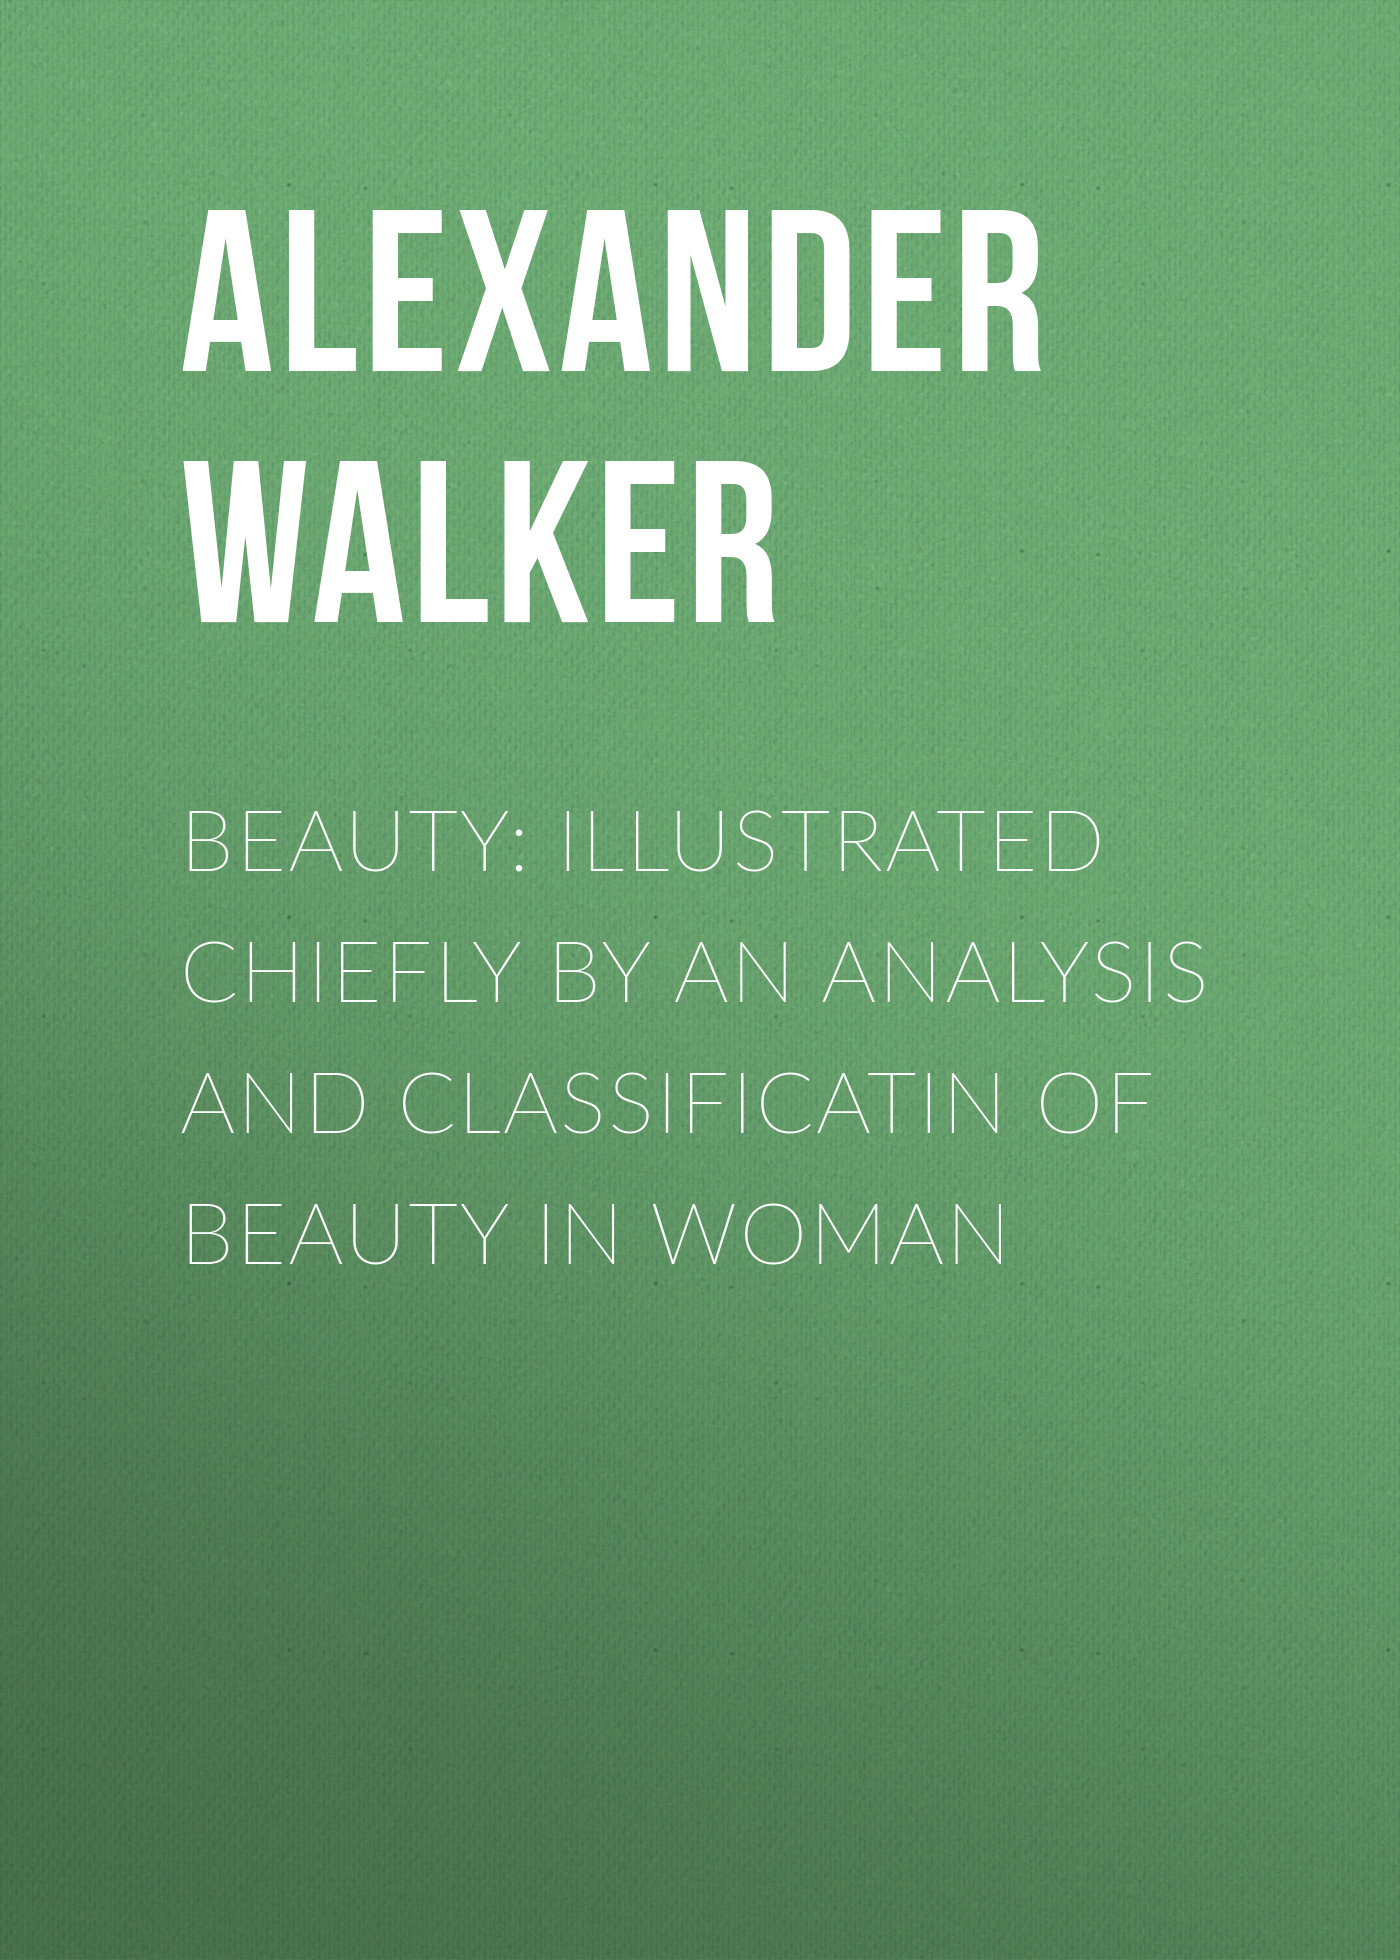 Alexander Walker Beauty: Illustrated Chiefly by an Analysis and Classificatin of Beauty in Woman an analysis of quality universal primary education in uganda